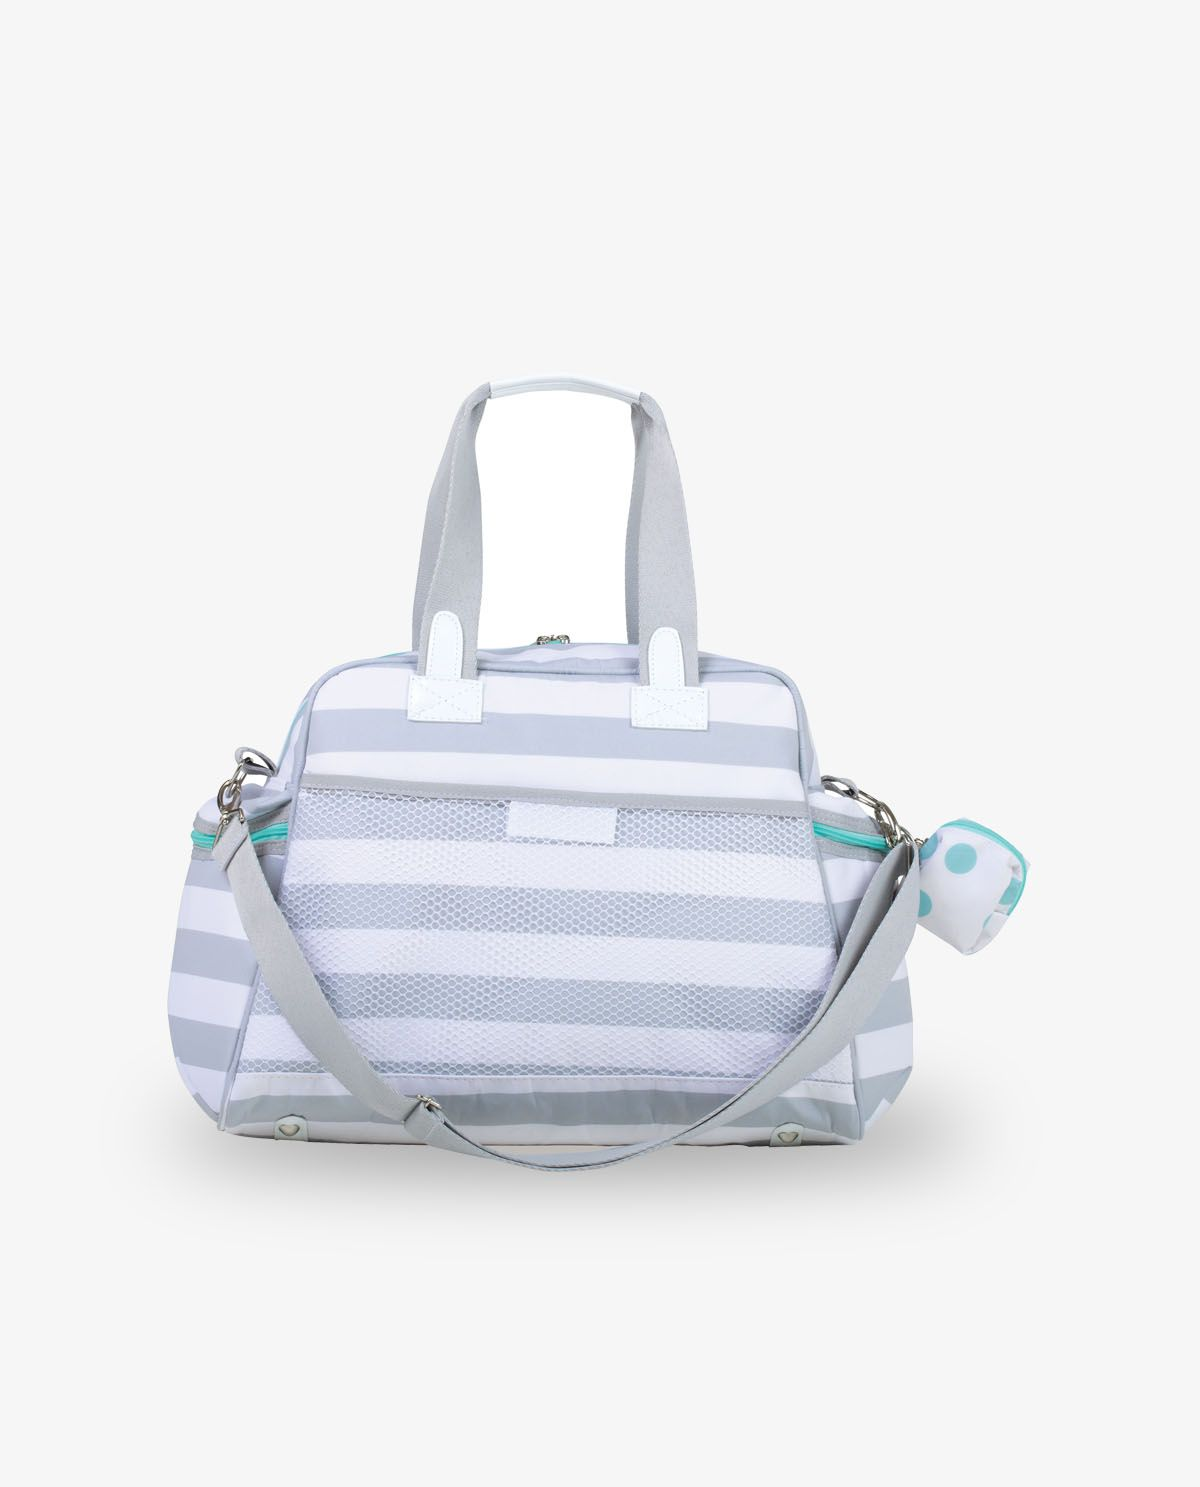 Bolsa Everyday Ice Menta  Candy Colors - Masterbag Ref 12can299